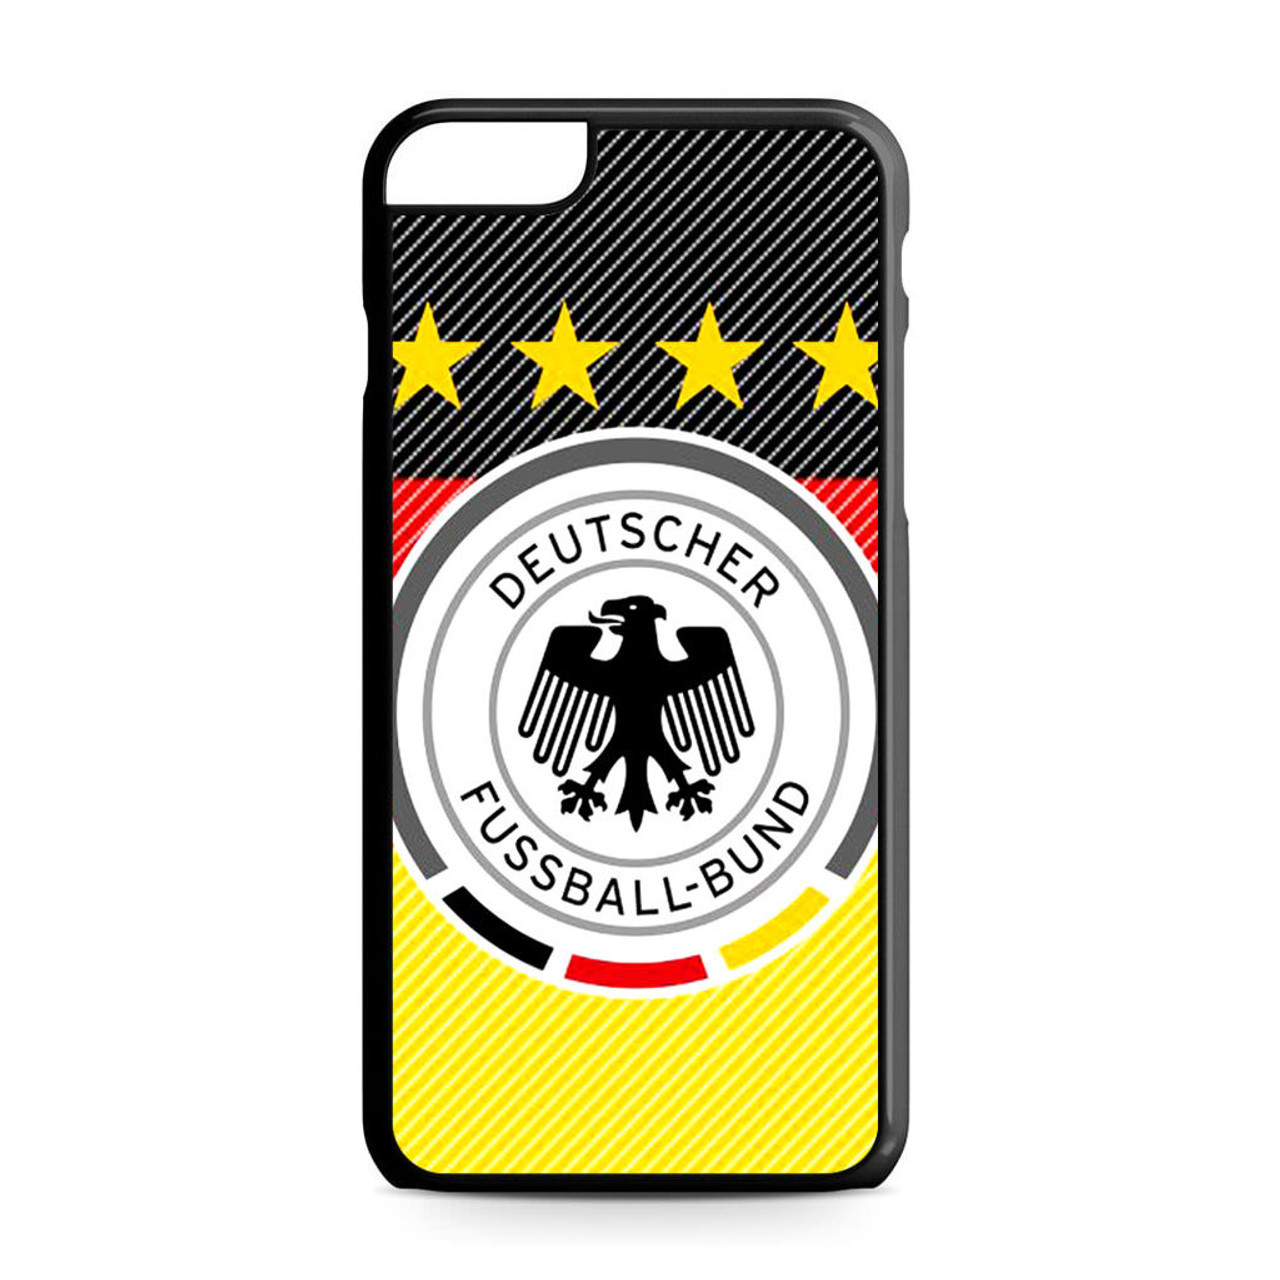 Deutscher Fussball Bund iPhone 6 Plus 6S Plus Case - CASESHUNTER 311c00e91